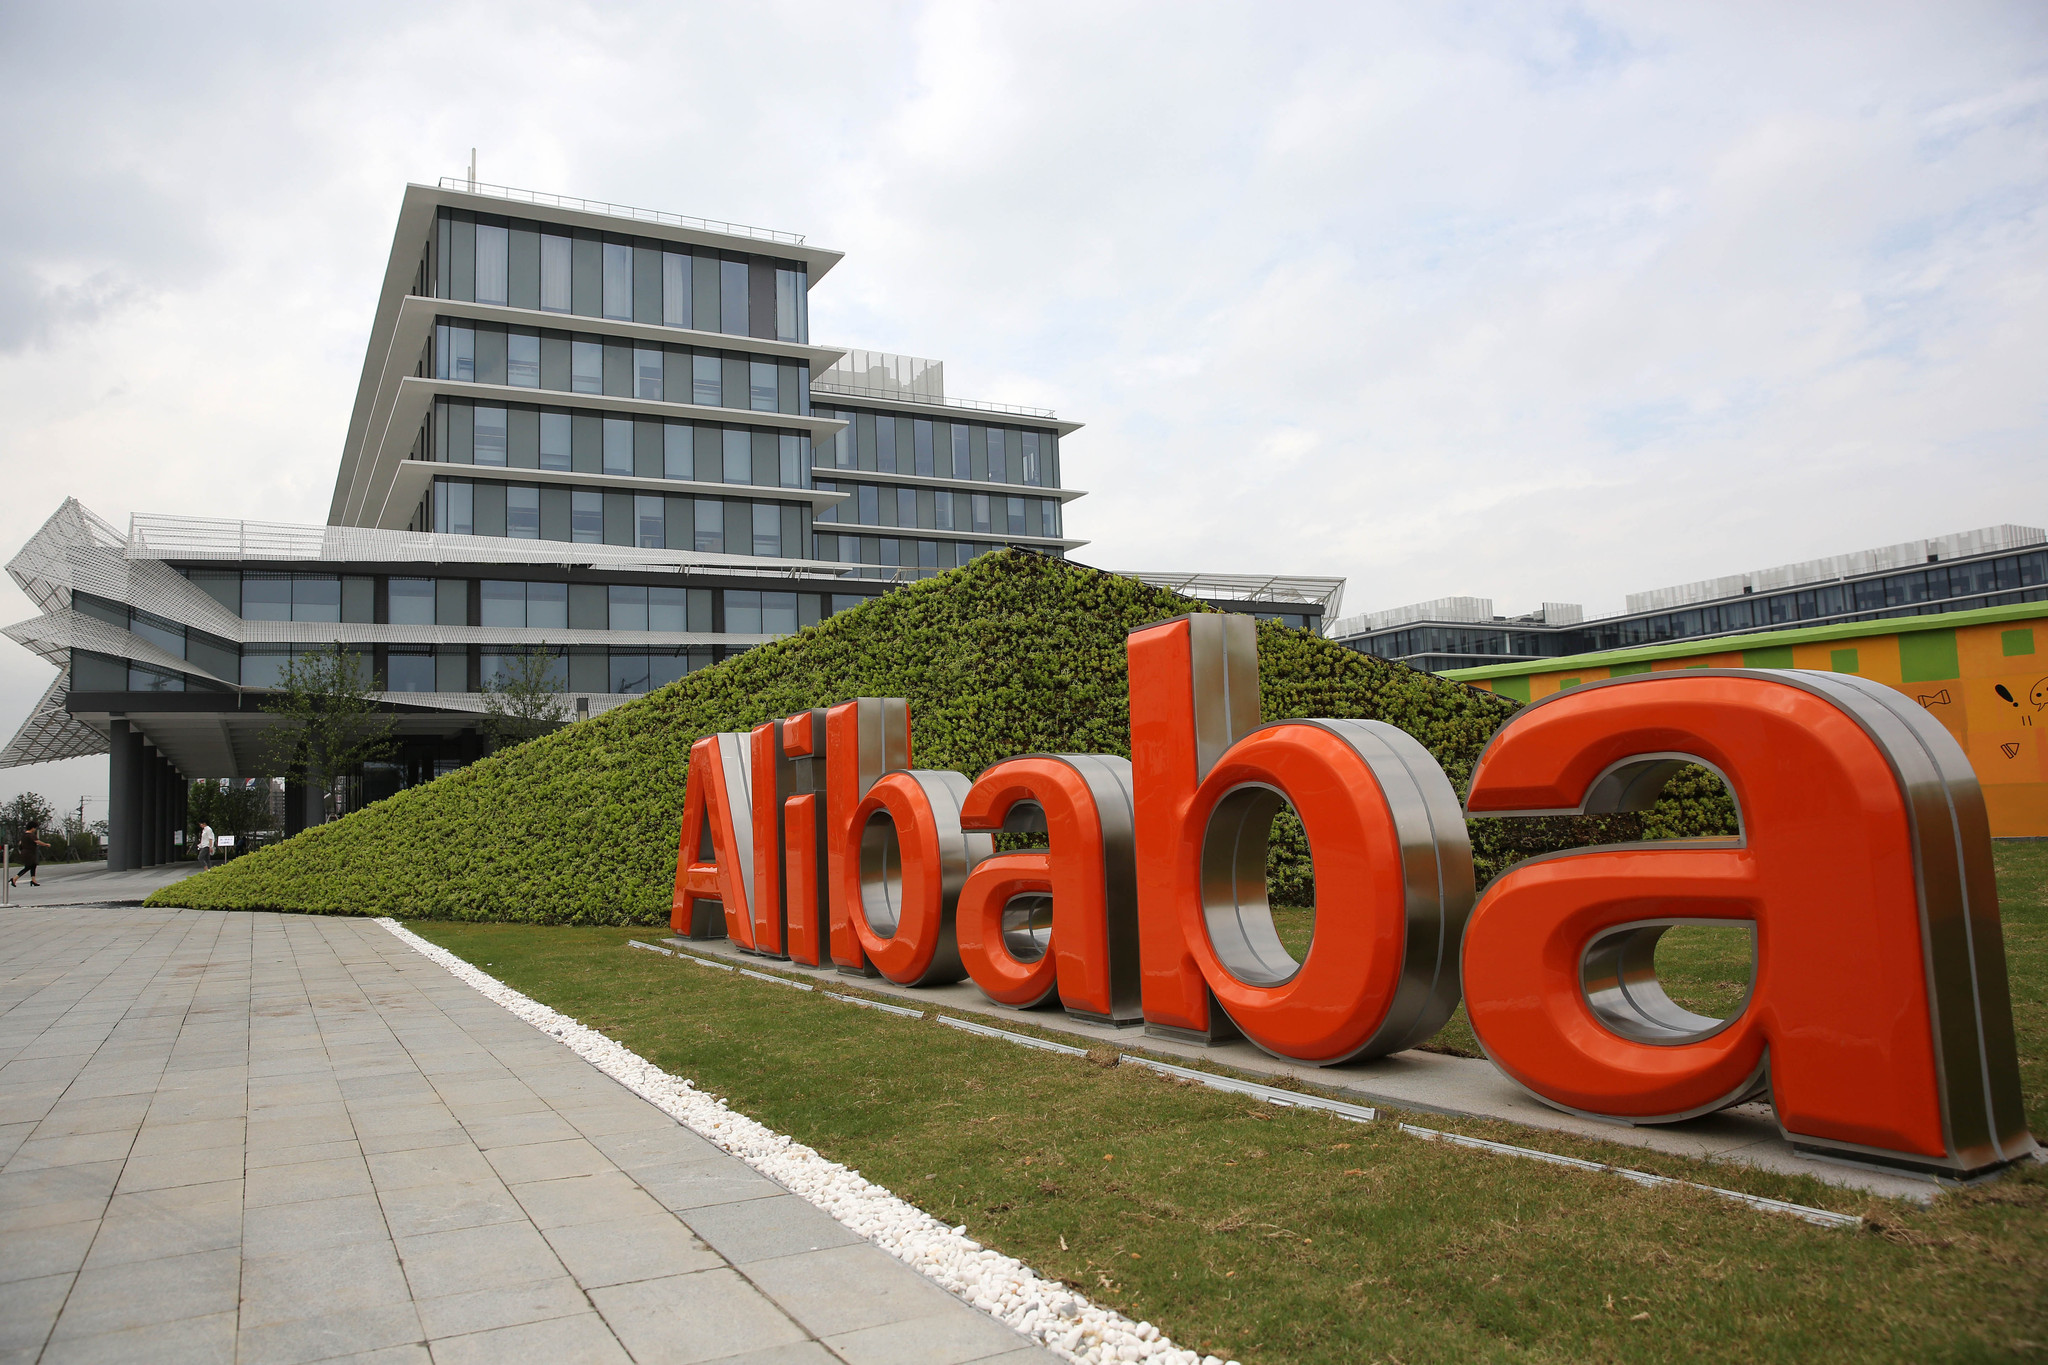 Alibaba buys Hong Kong's South China Morning Post